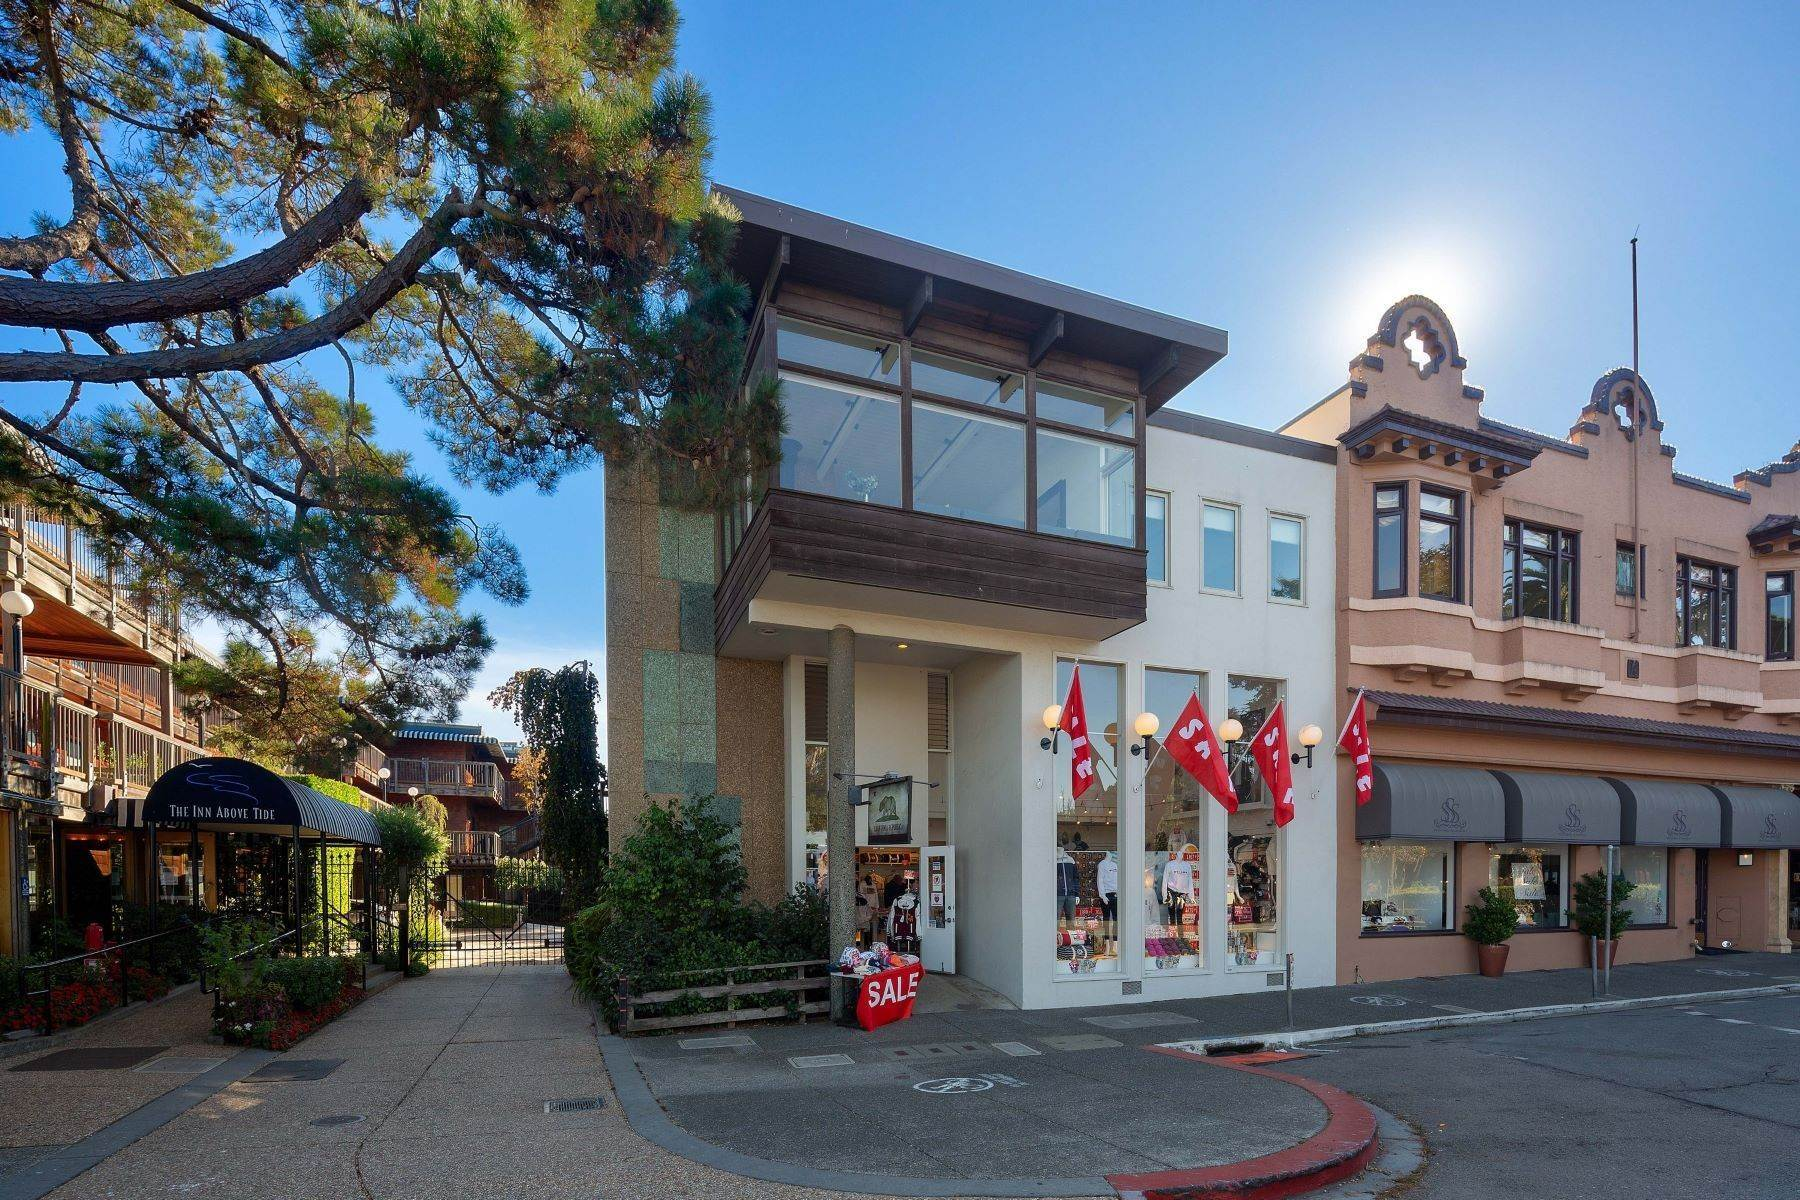 7. Property for Sale at Exceptional Residental / Commercial Investment Opportunity in Prime Location 26 El Portal Sausalito, California 94965 United States